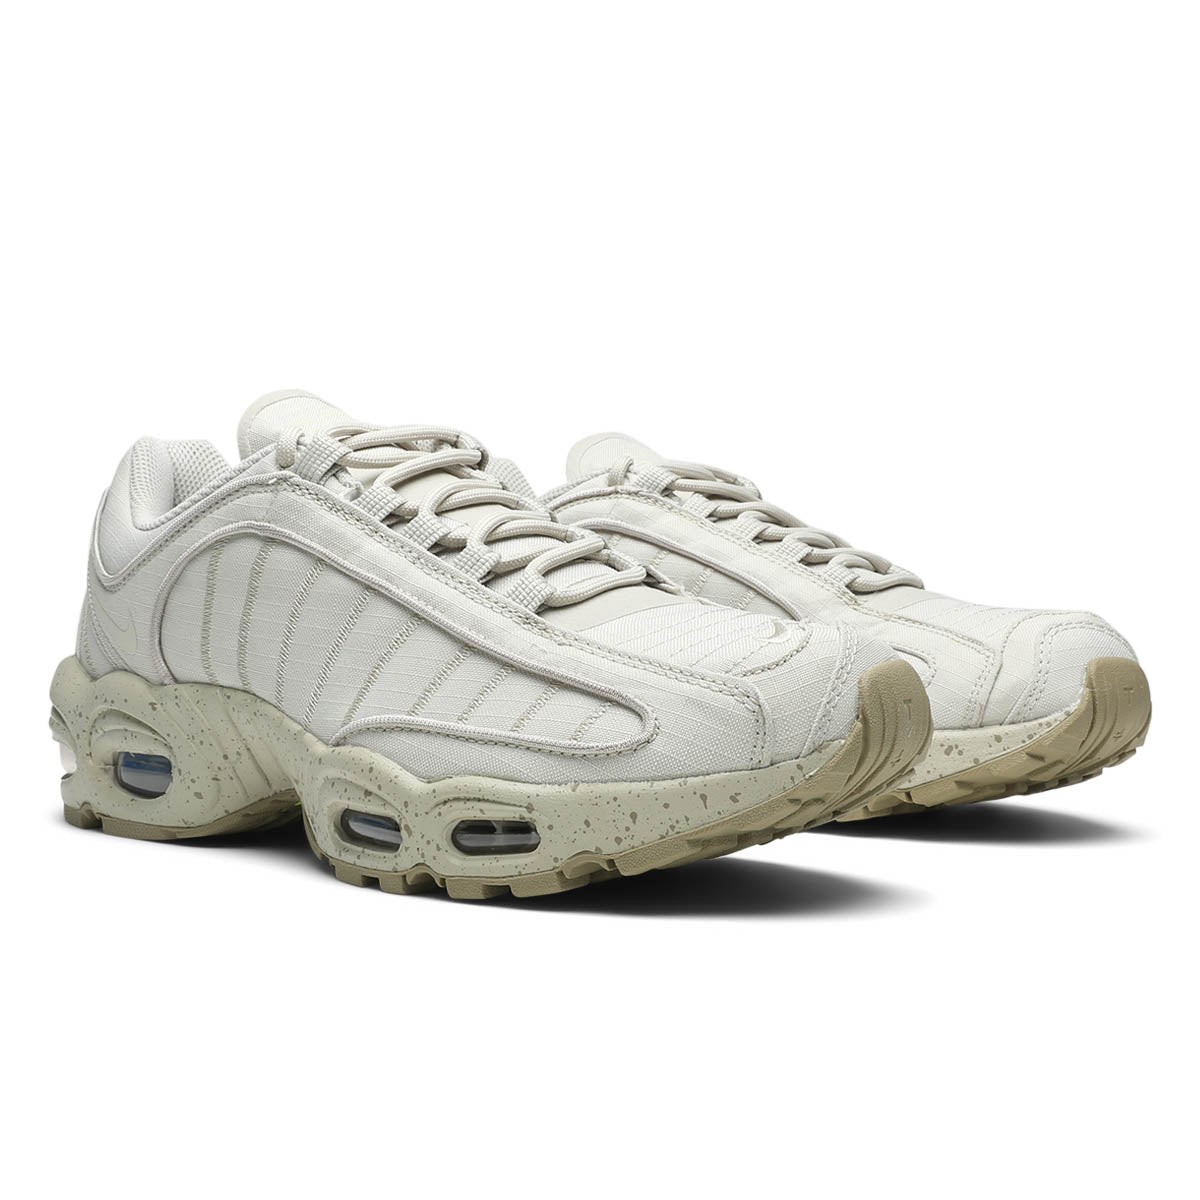 6bf332156be94a Hints of Nike's volt yellow at the heel and sole finish things off with a  modern touch. Nike Air Max Tailwind IV SP QS